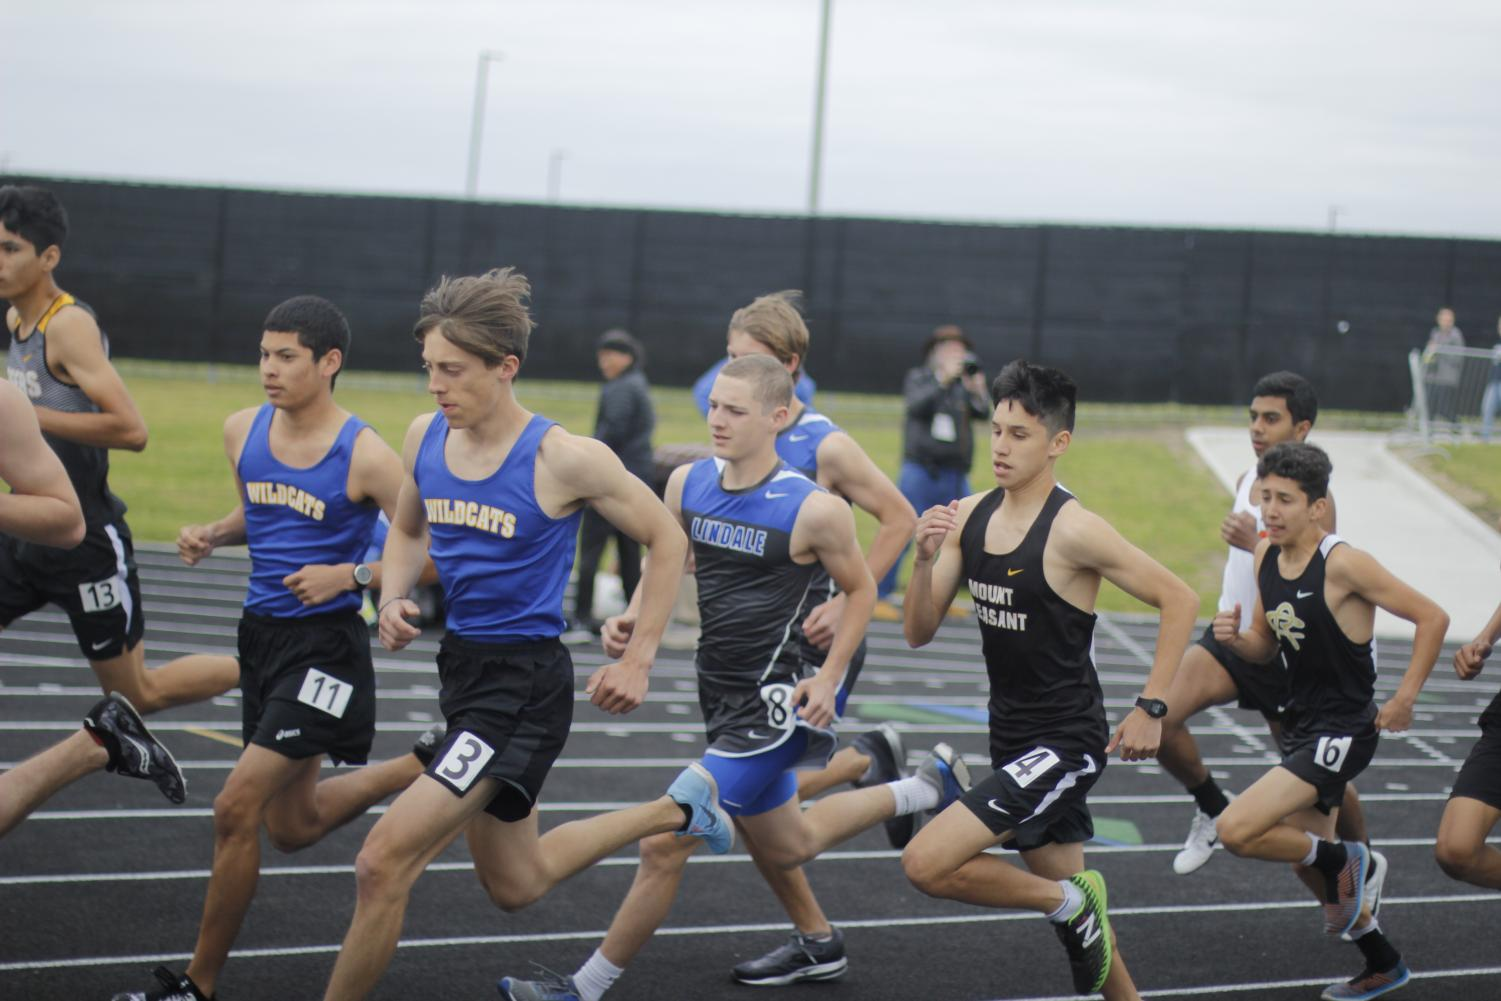 The track team competes at district in Royse City.